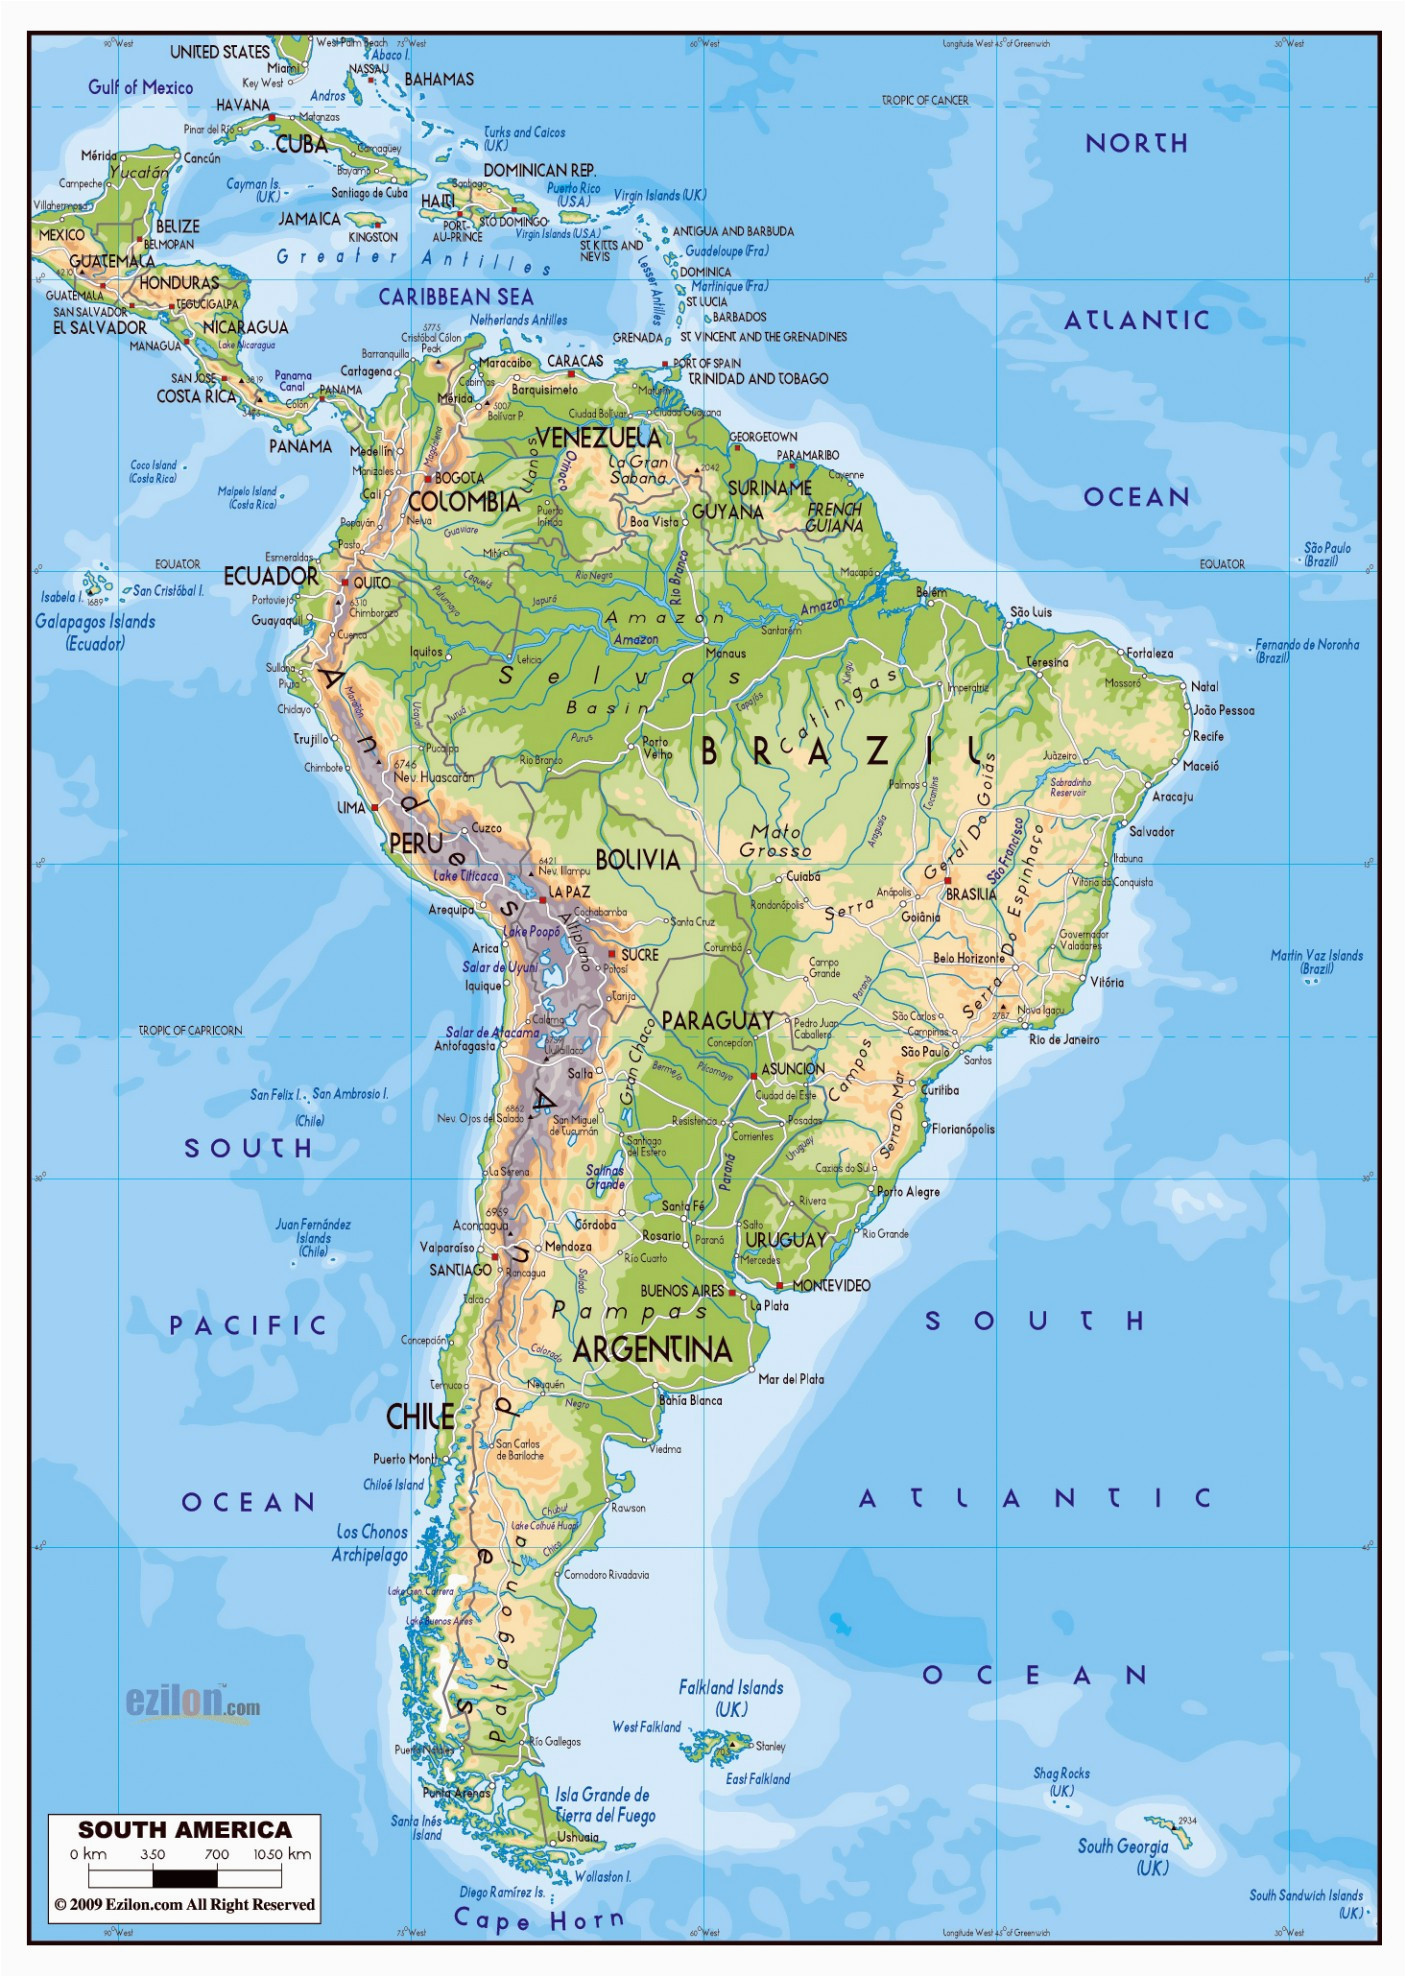 Labeled Map Of Spain south America Map Labeled Climatejourney org